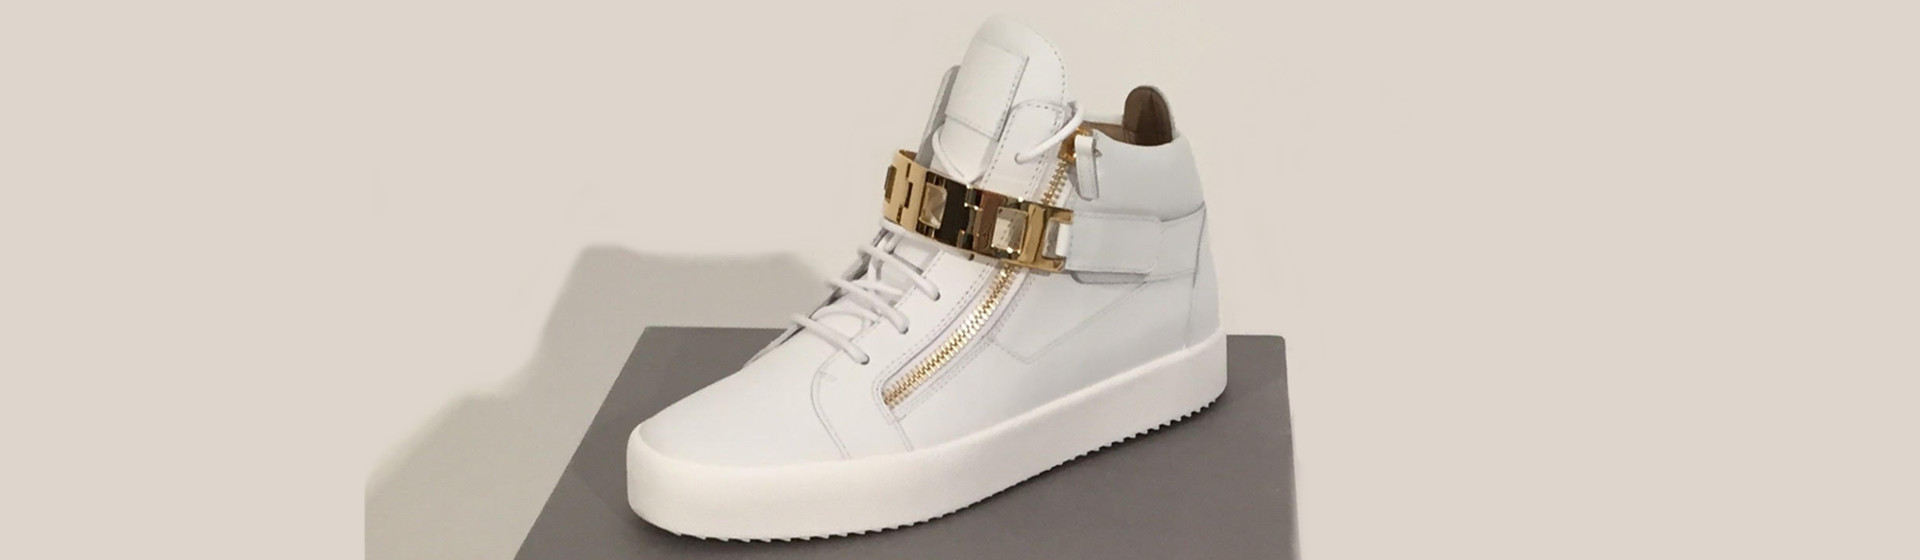 Staff Pick: Hot for Zanotti